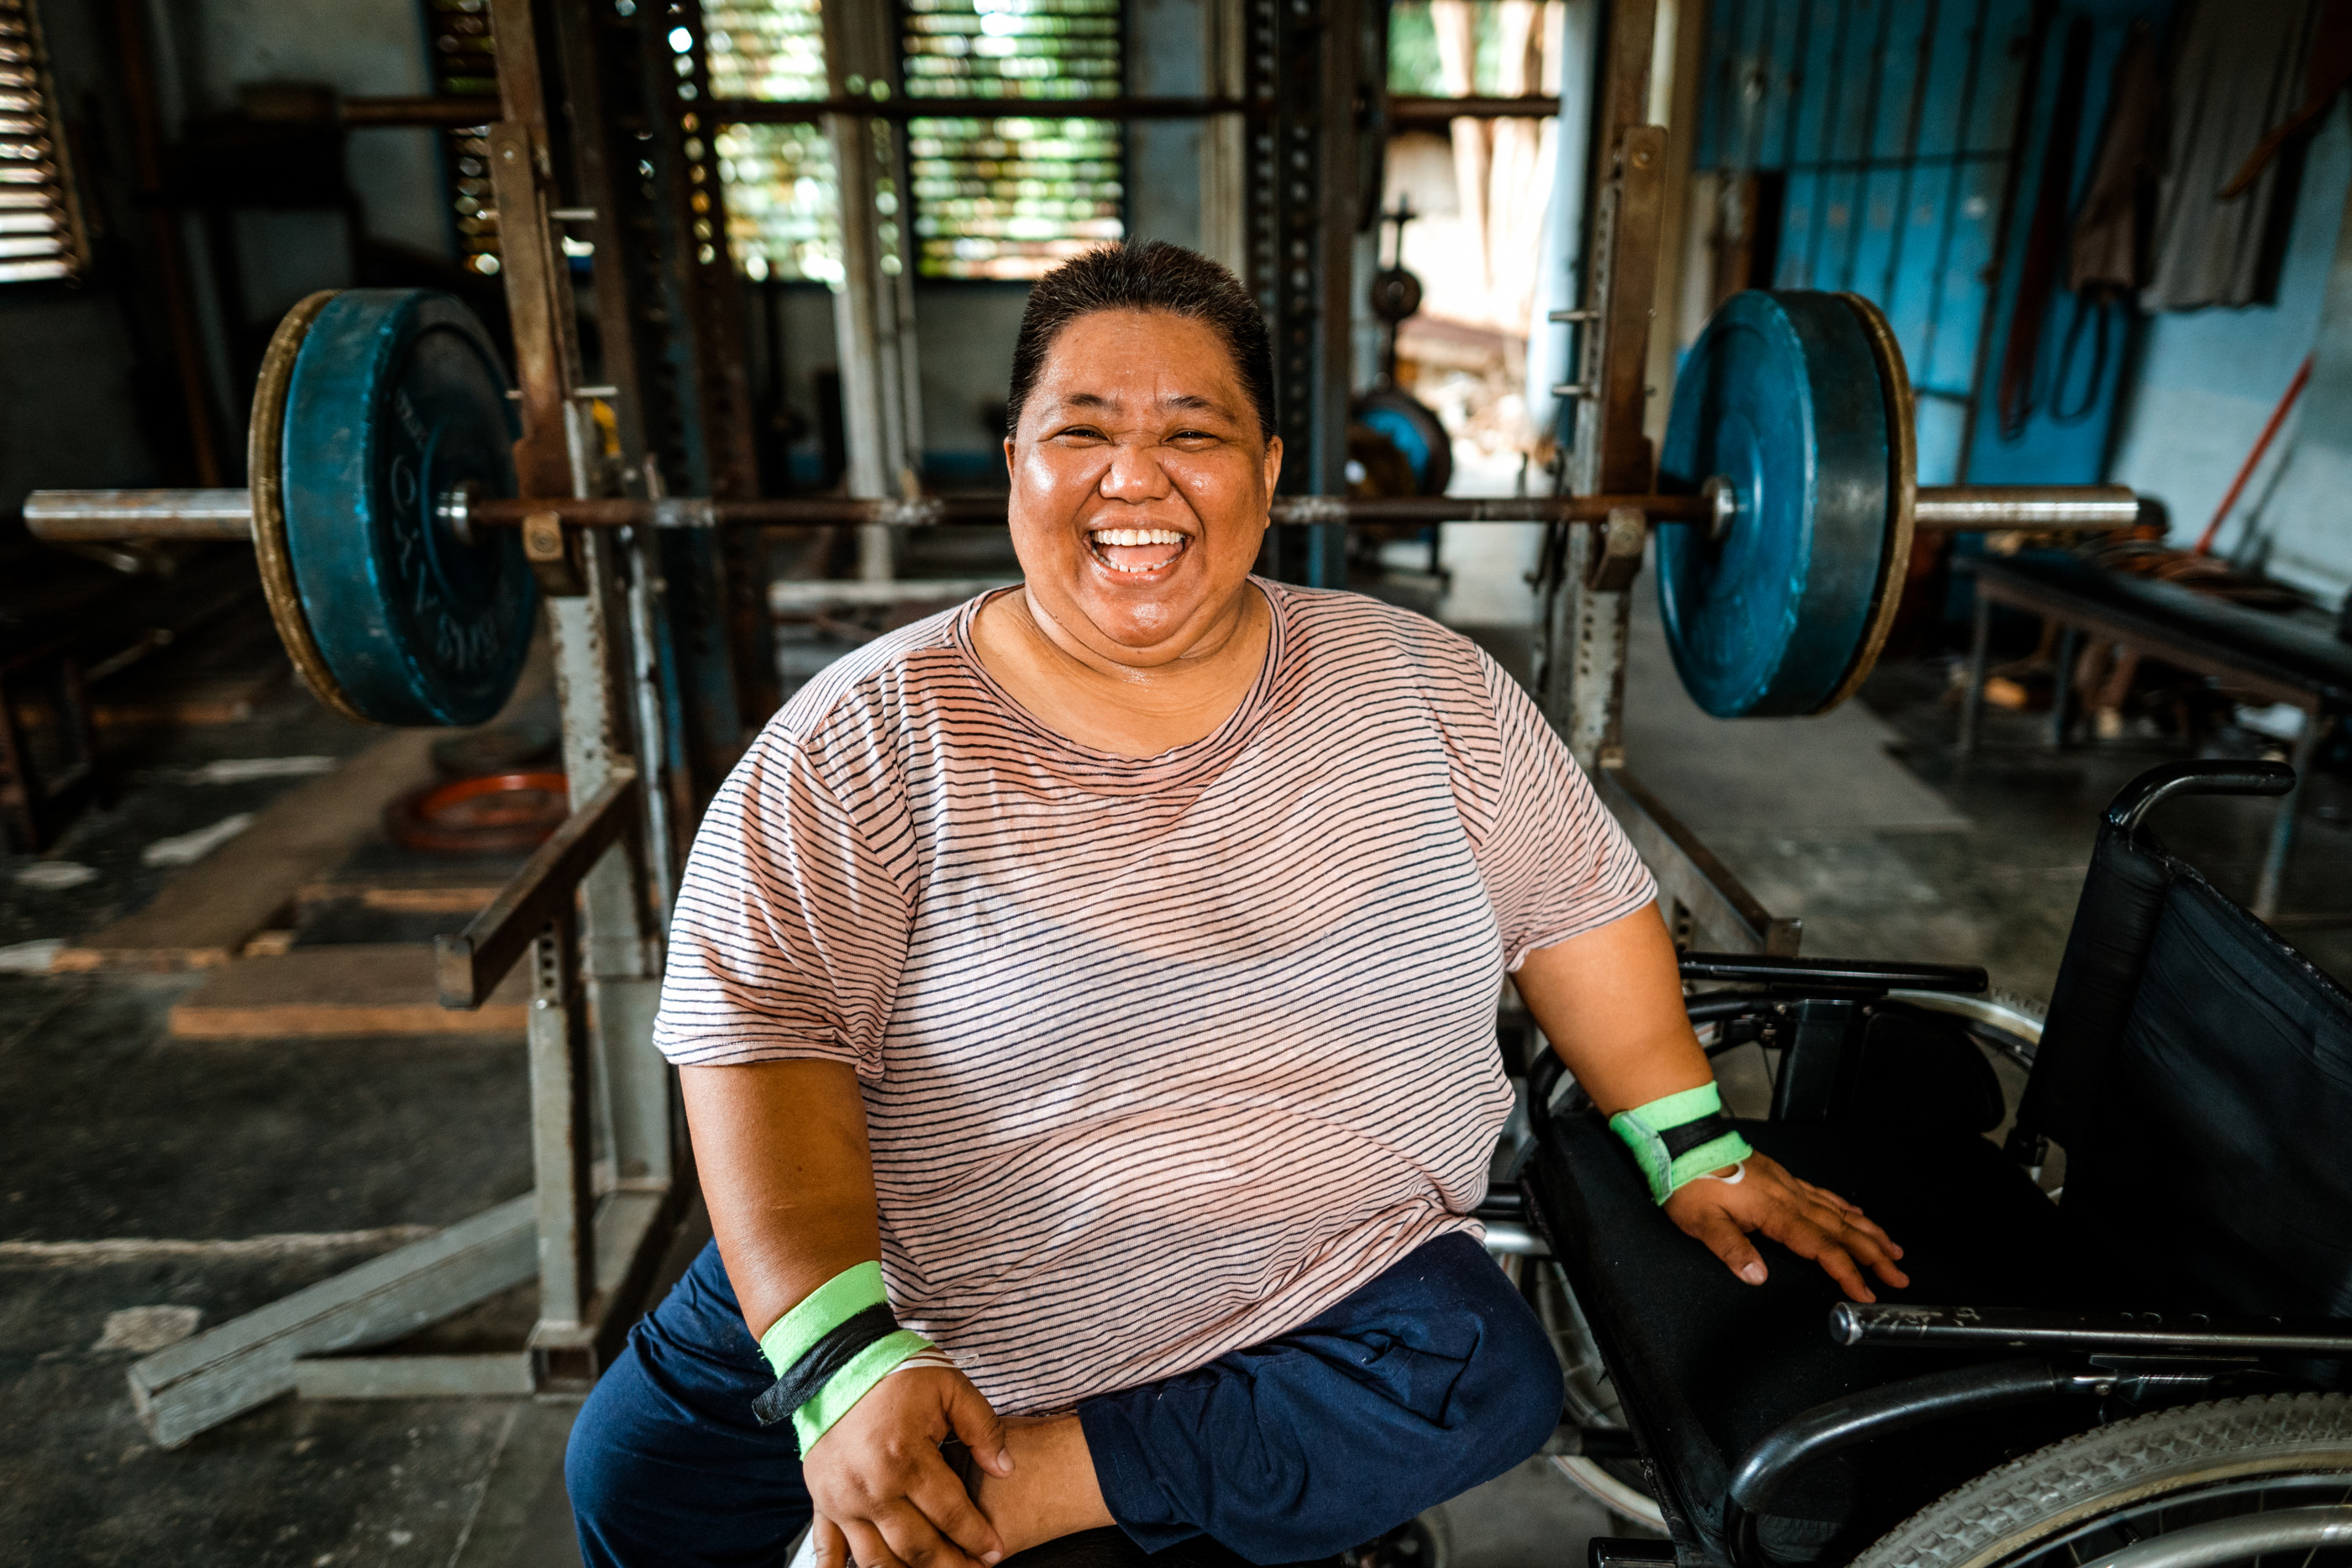 Athlete, Powerlifter, Strong woman, Mother, independent, differently abled, strong, proud, empowered, human